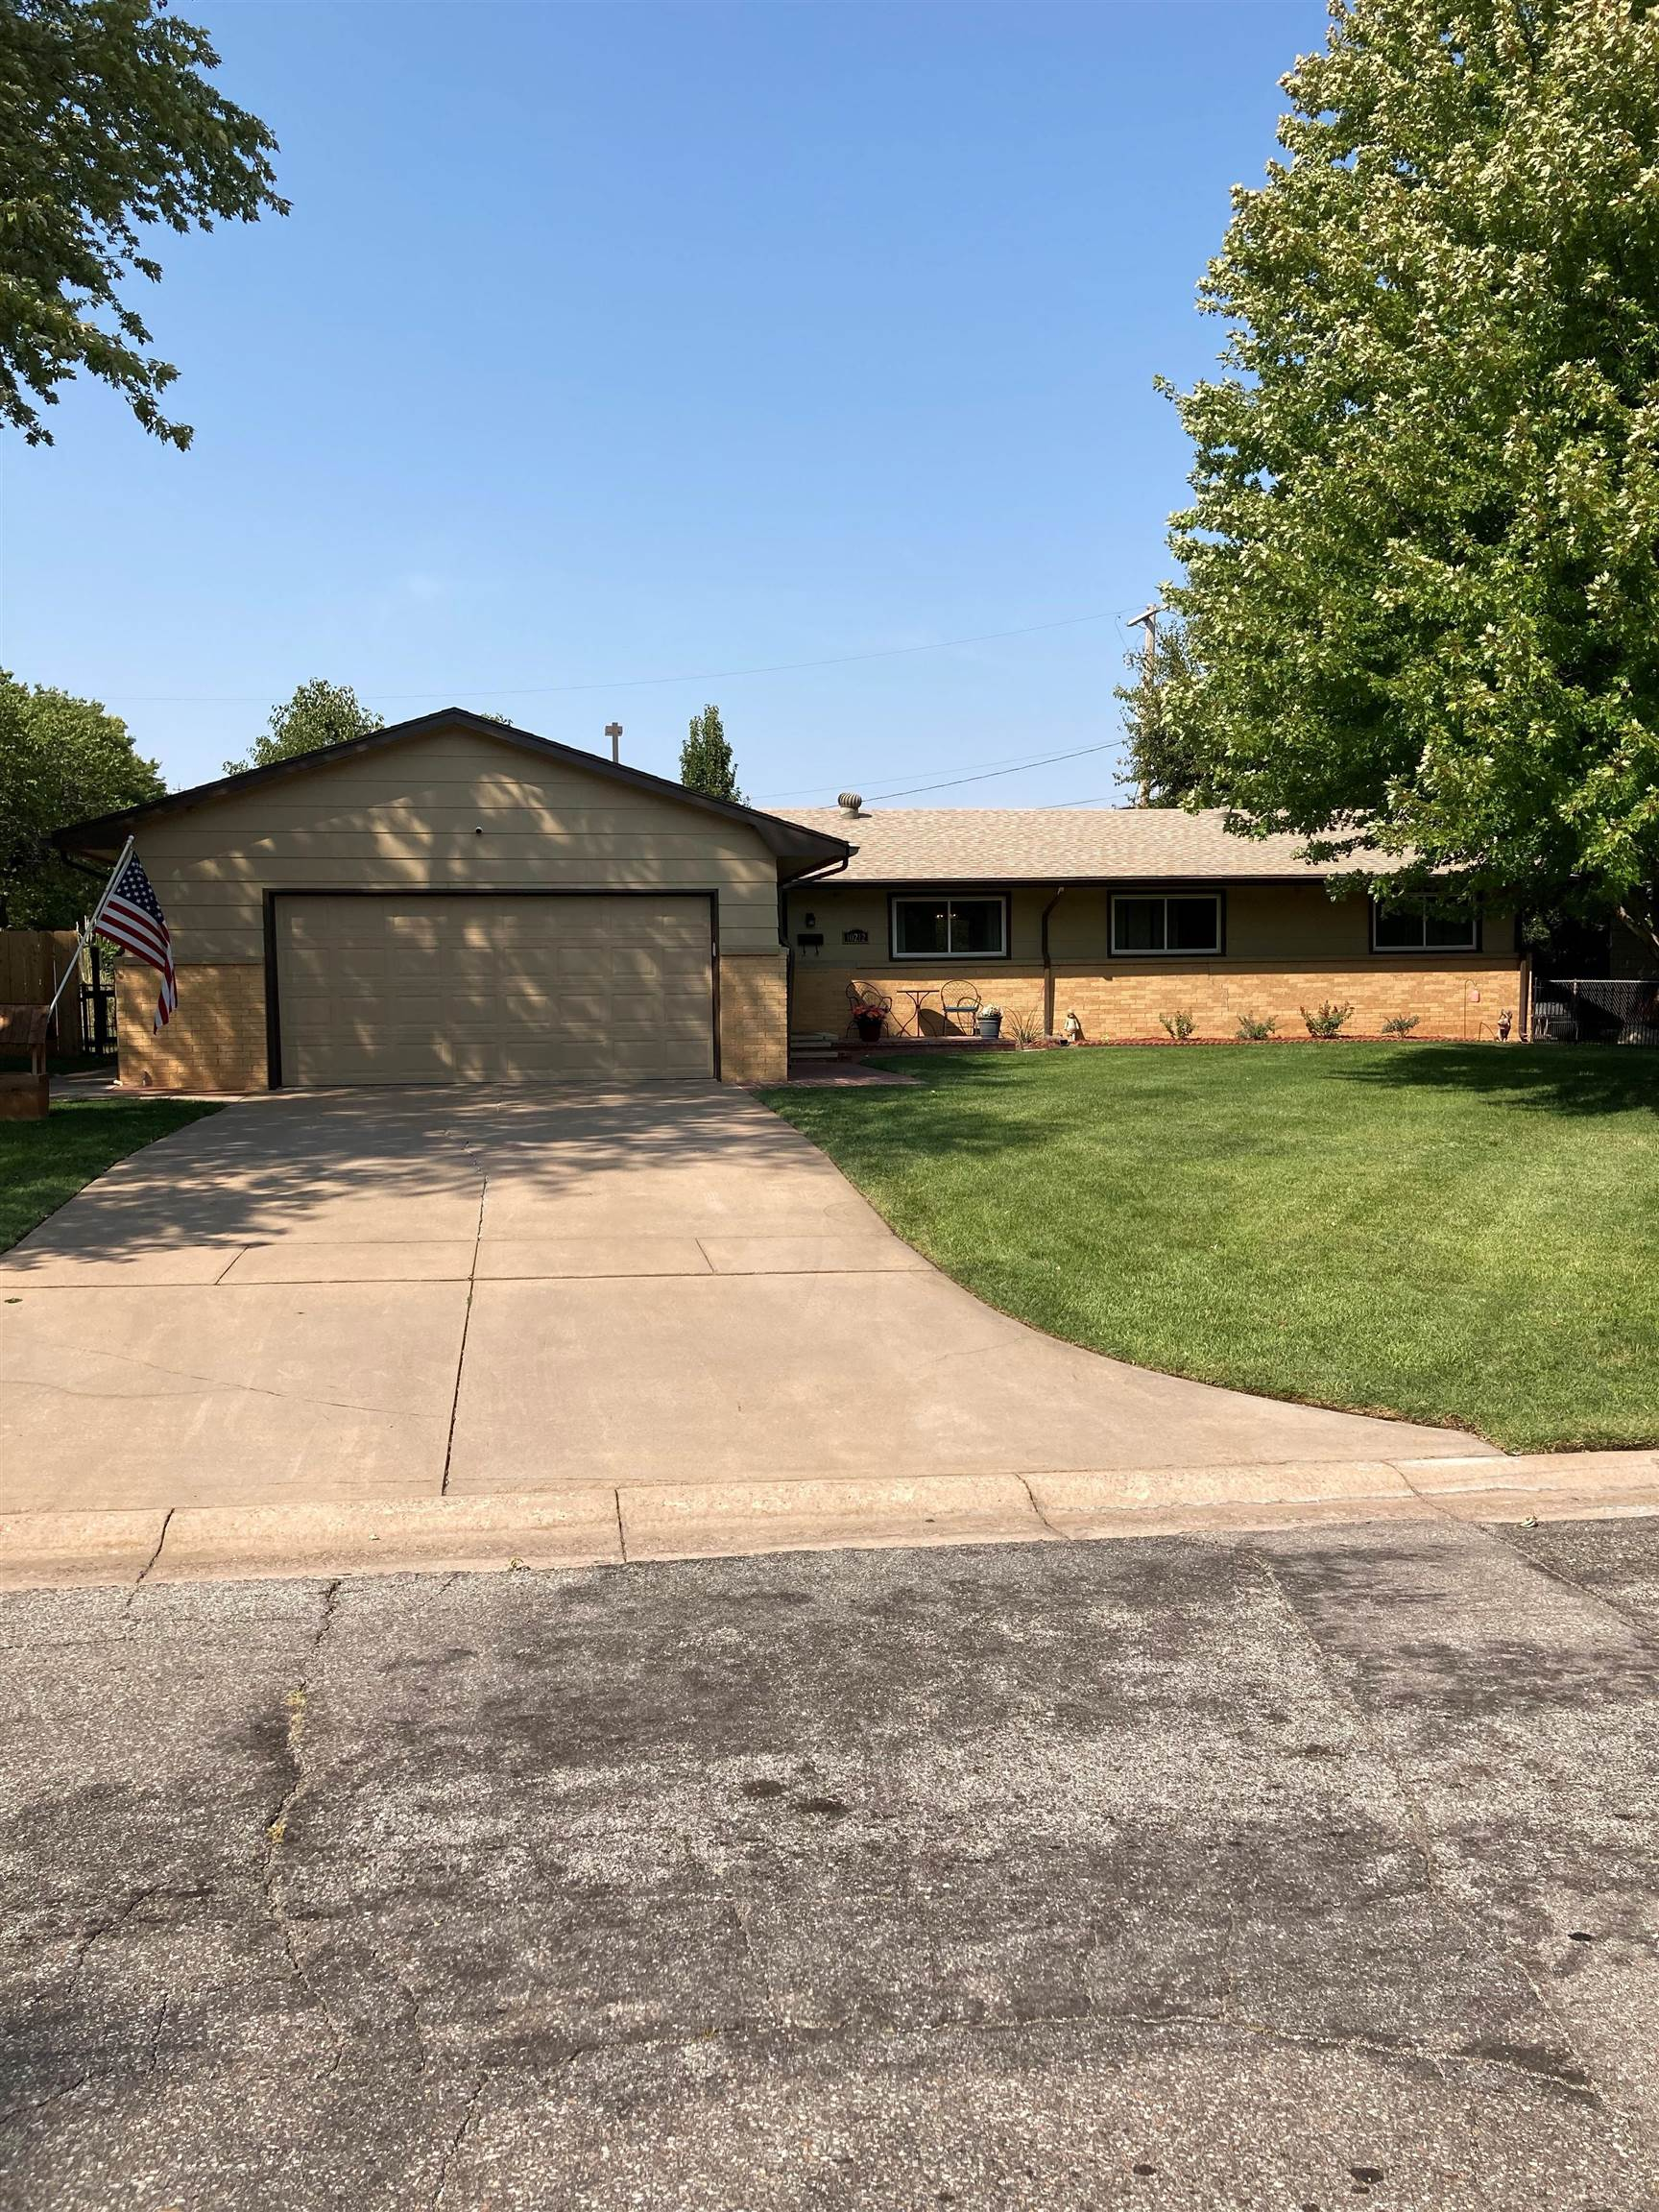 Well maintained home on the desirable Northwest side of Wichita located near Central and Maize. Come